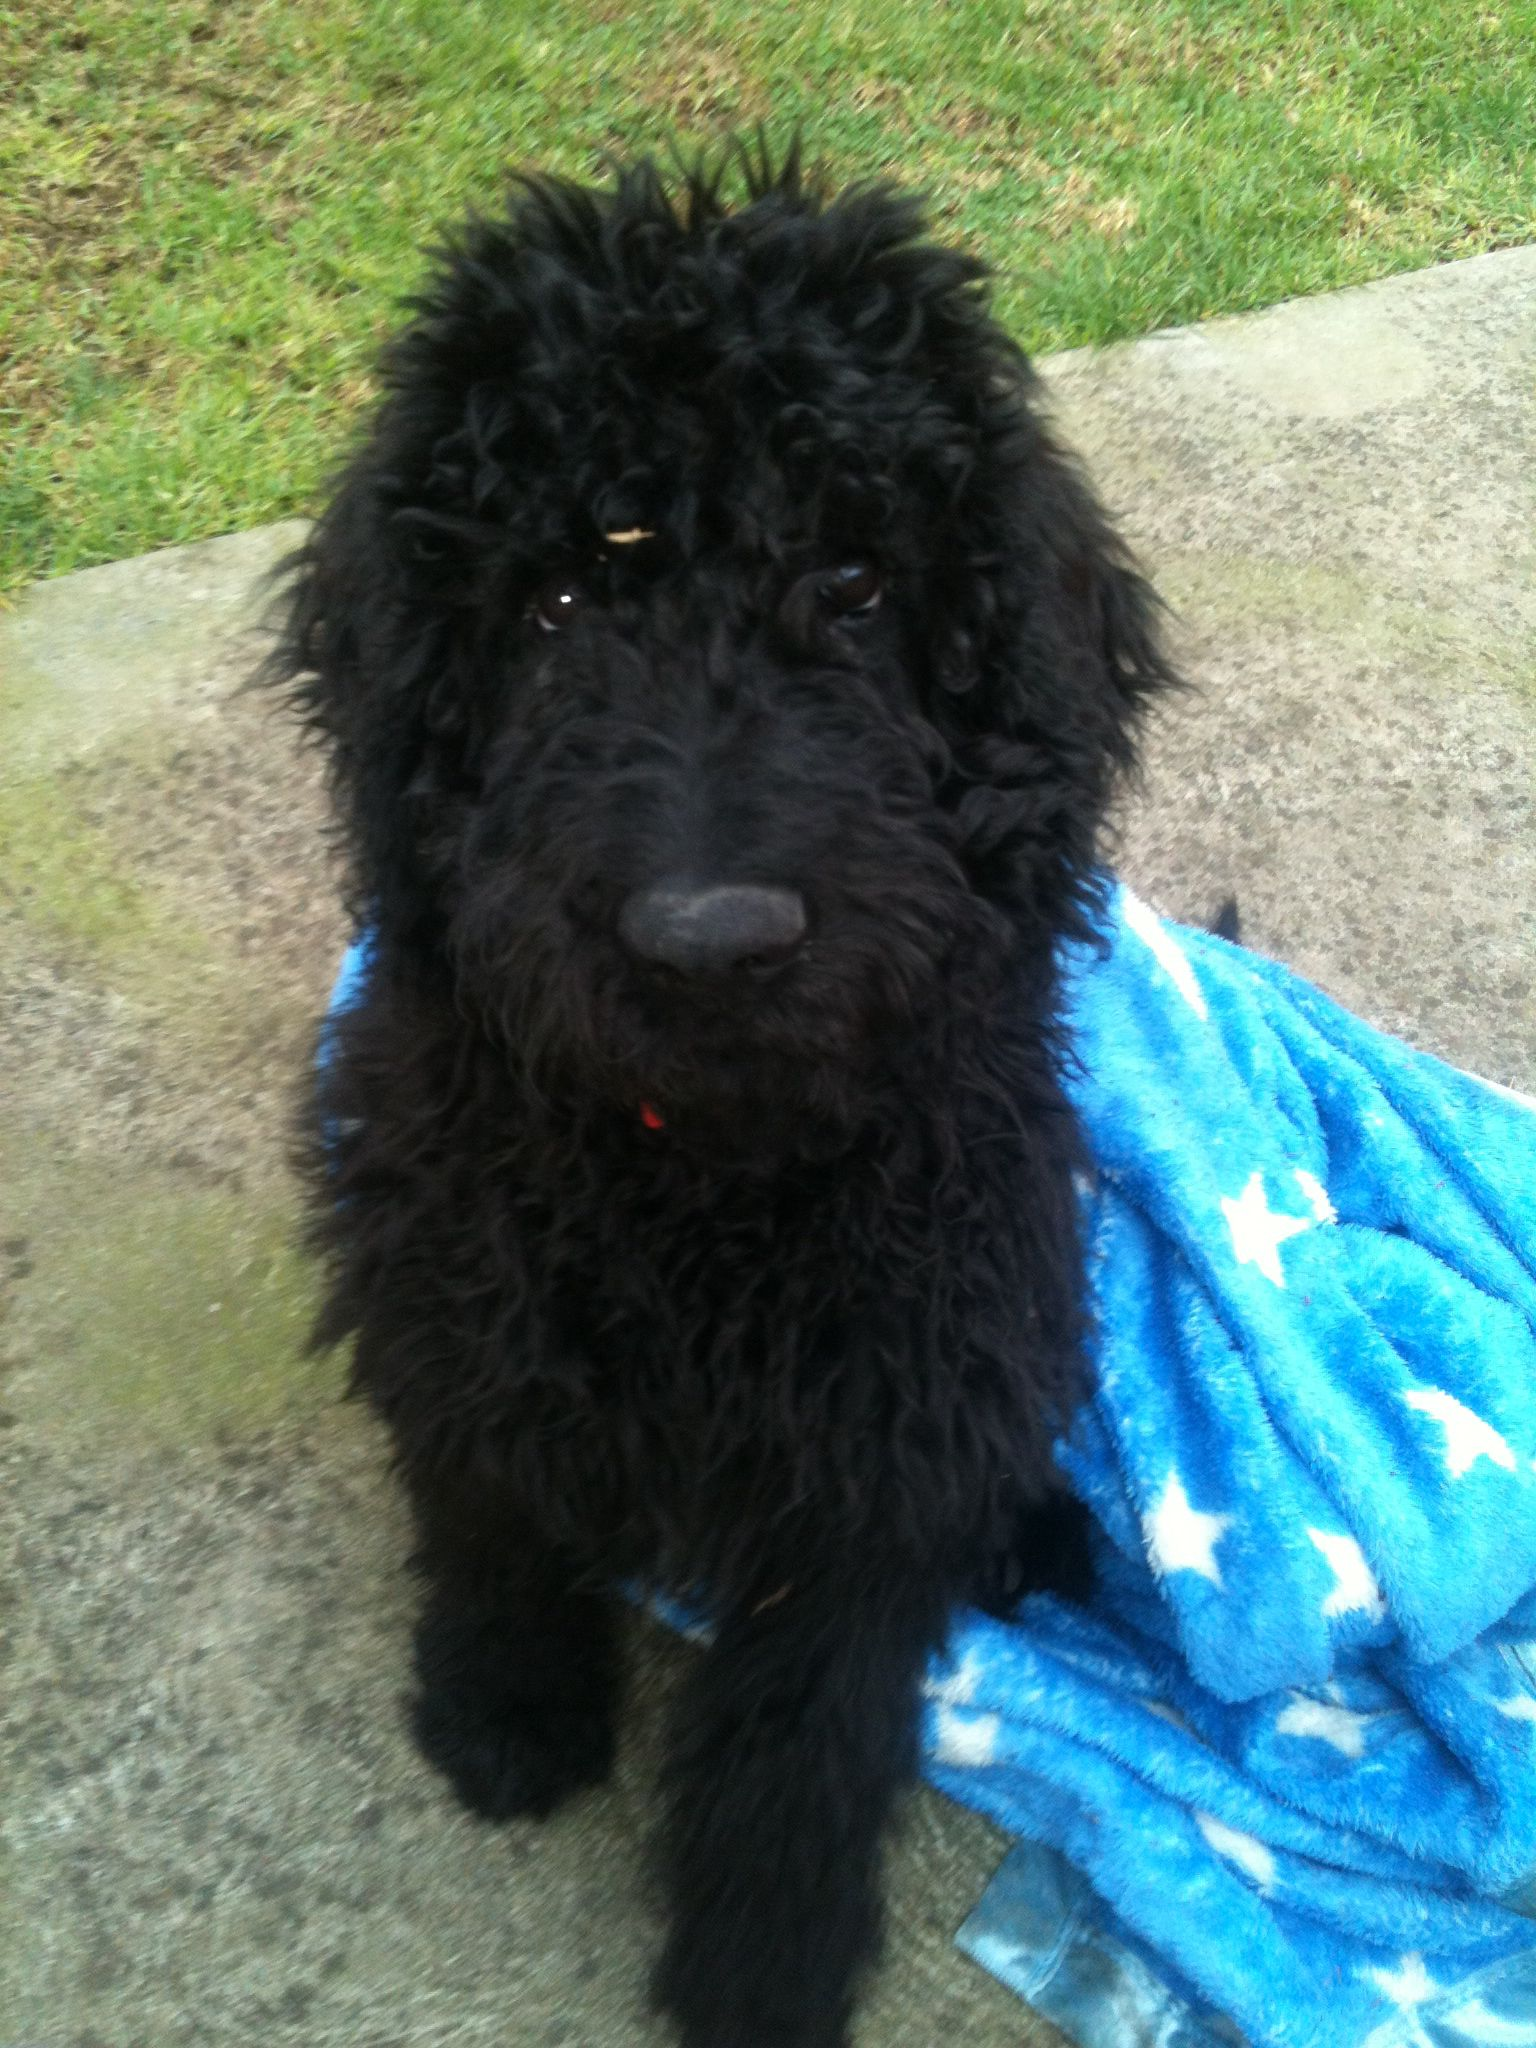 Bentley our black Groodle. Such a beautiful creature